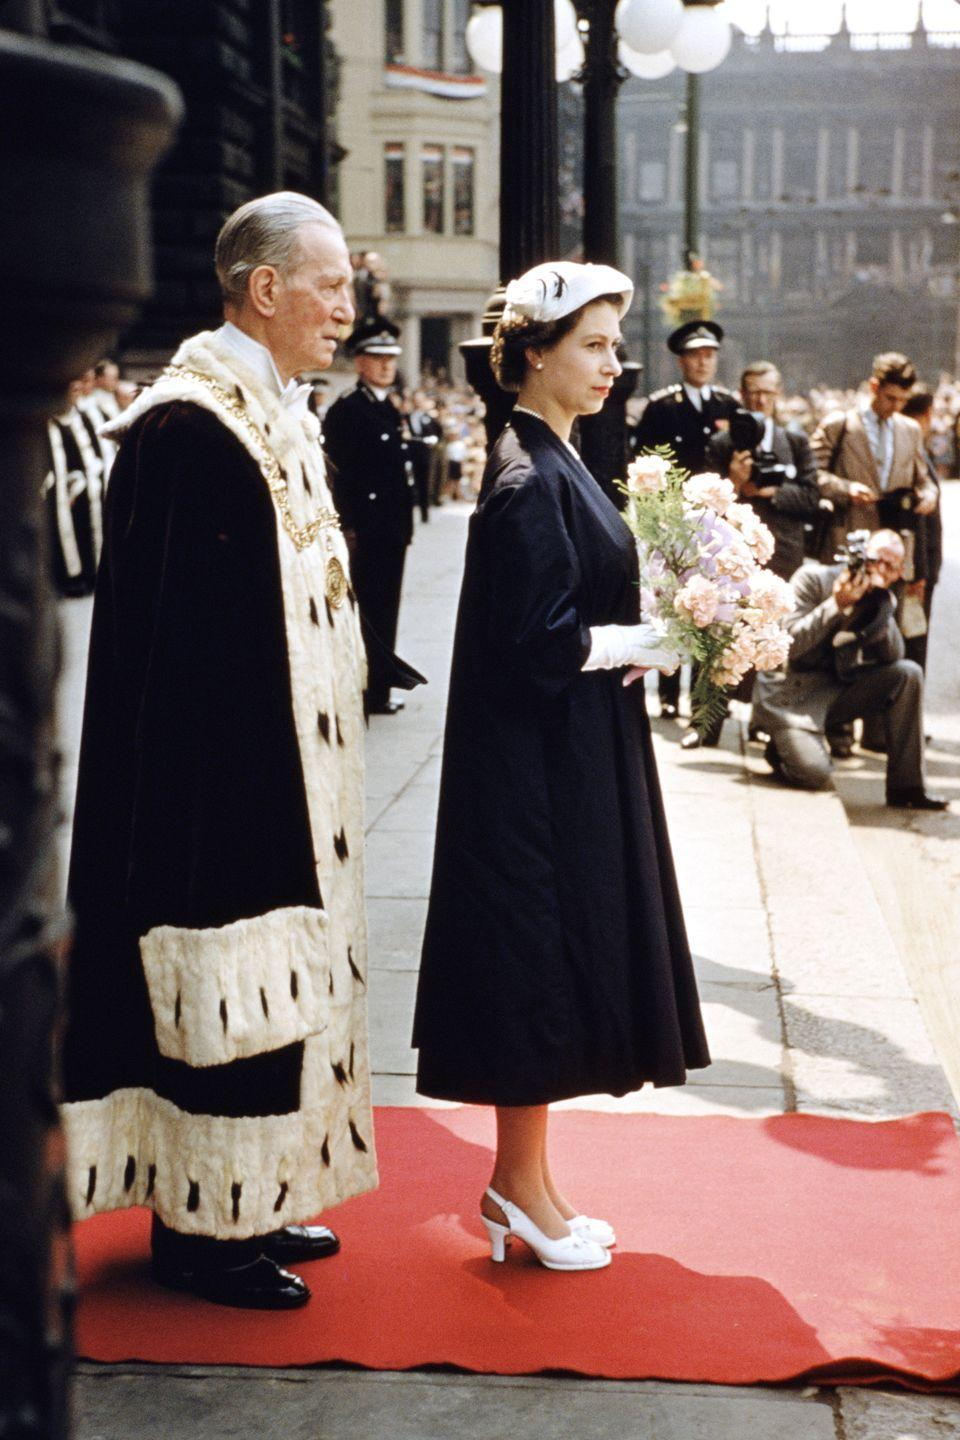 <p>In a blue A-line dress with white heels and gloves outside the City Chambers in Glasgow during a Coronation Tour of Scotland. Next to her is the Lord Provost of Glasgow, Thomas Kerr.</p>